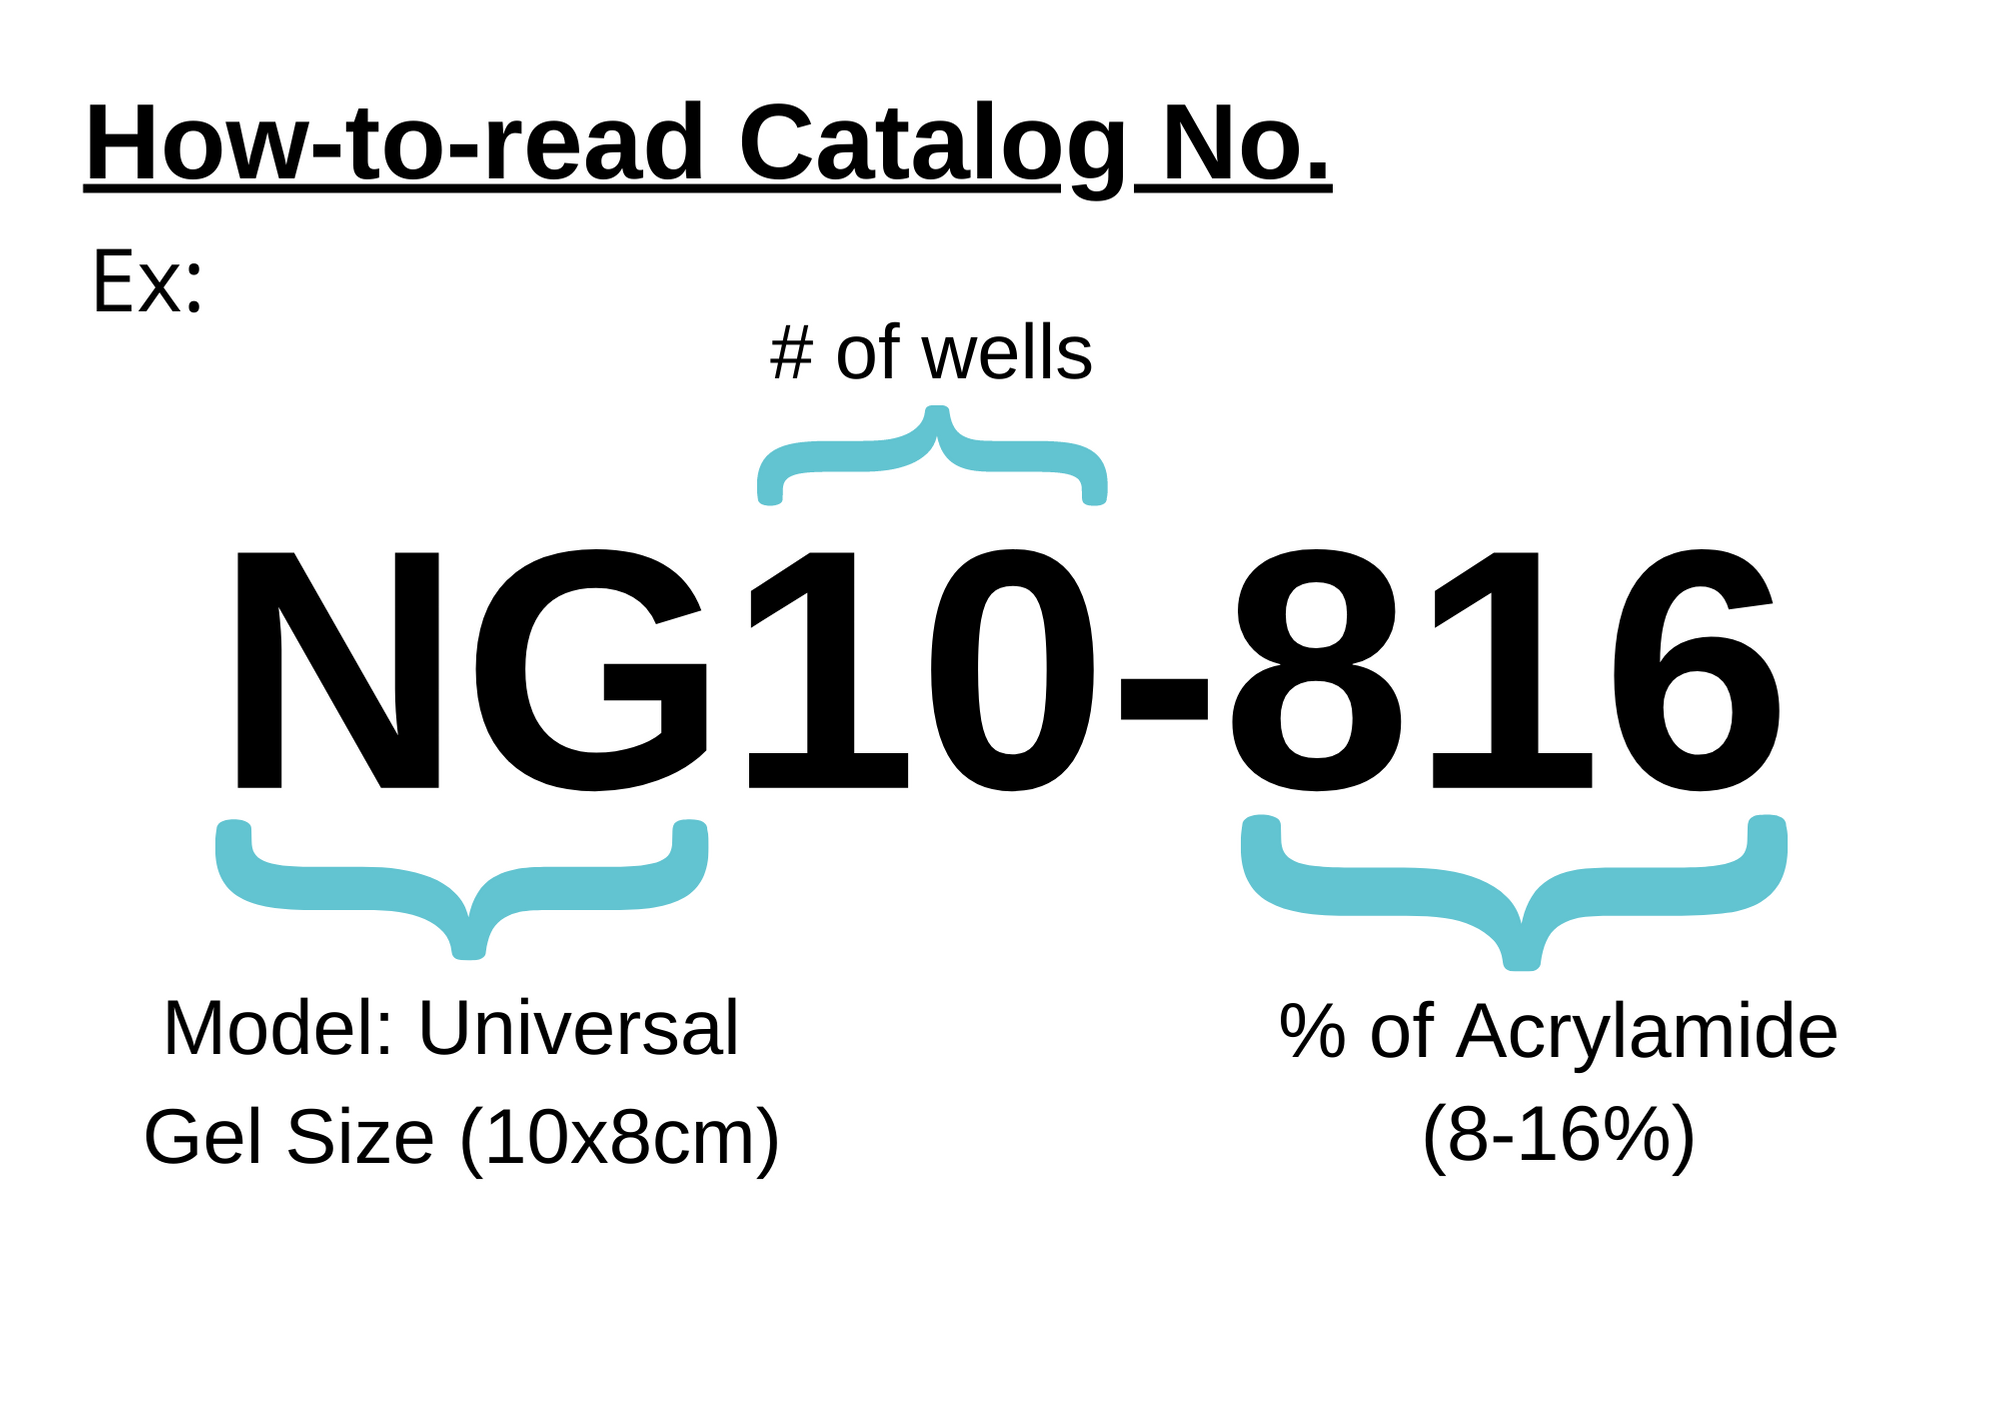 How to read catalog number